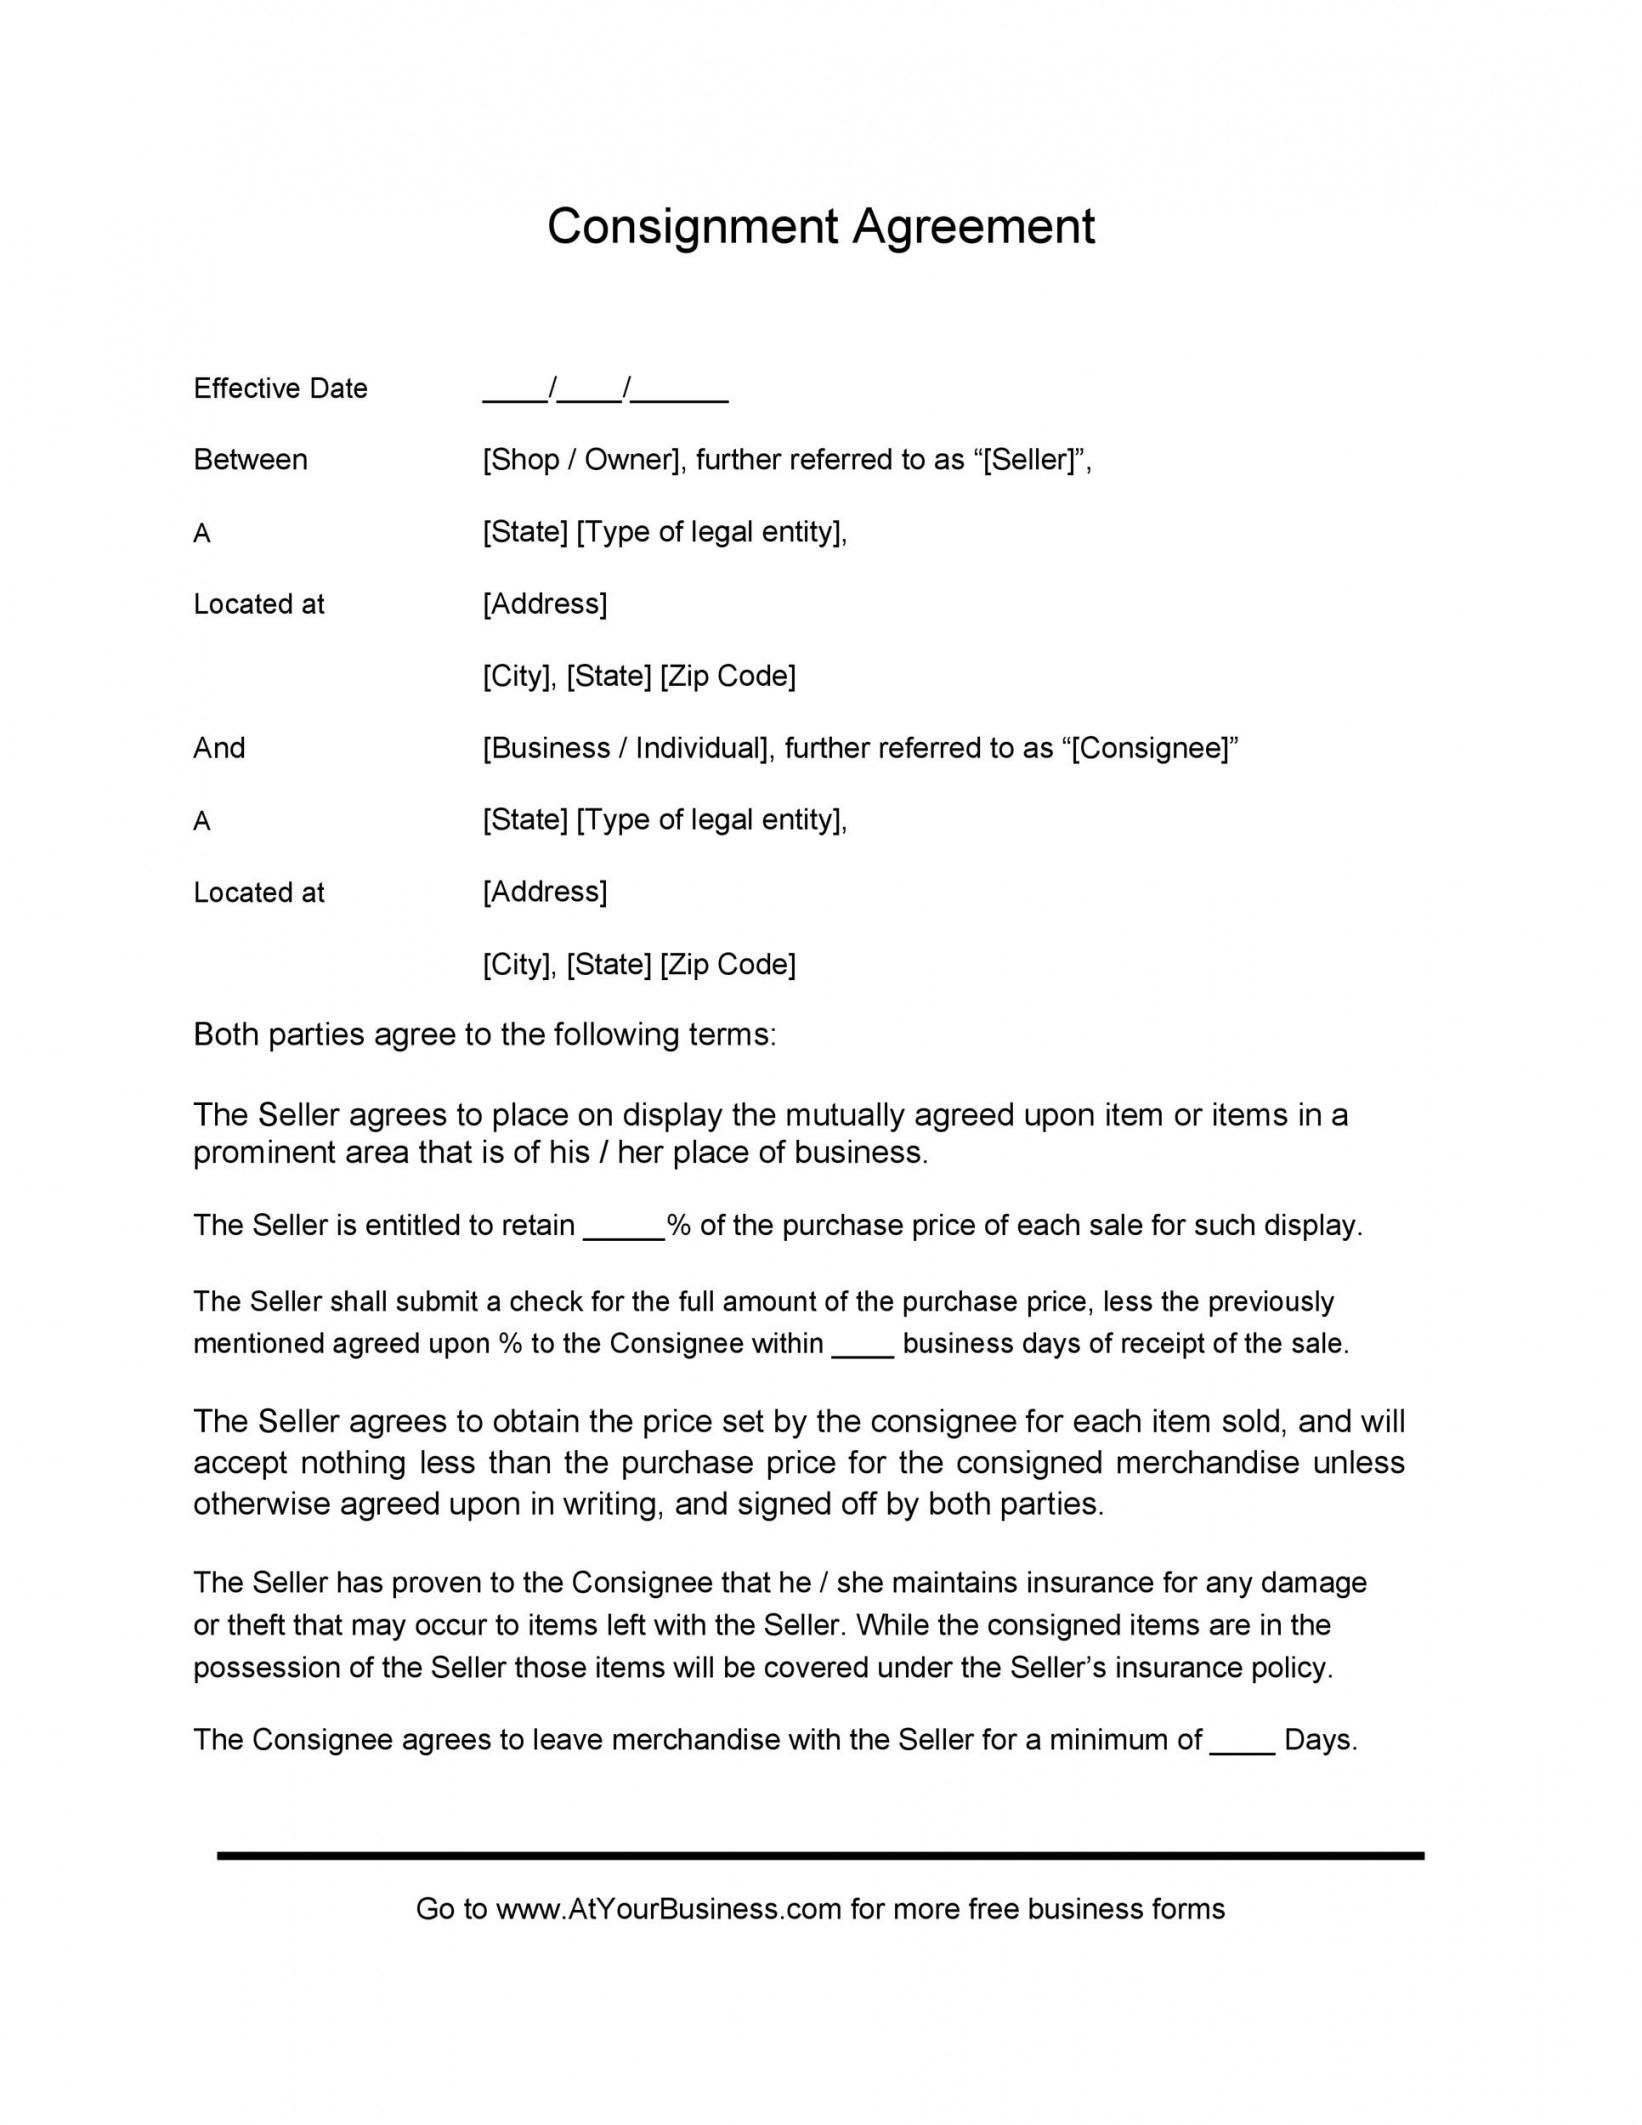 Consignment Store Agreement Template